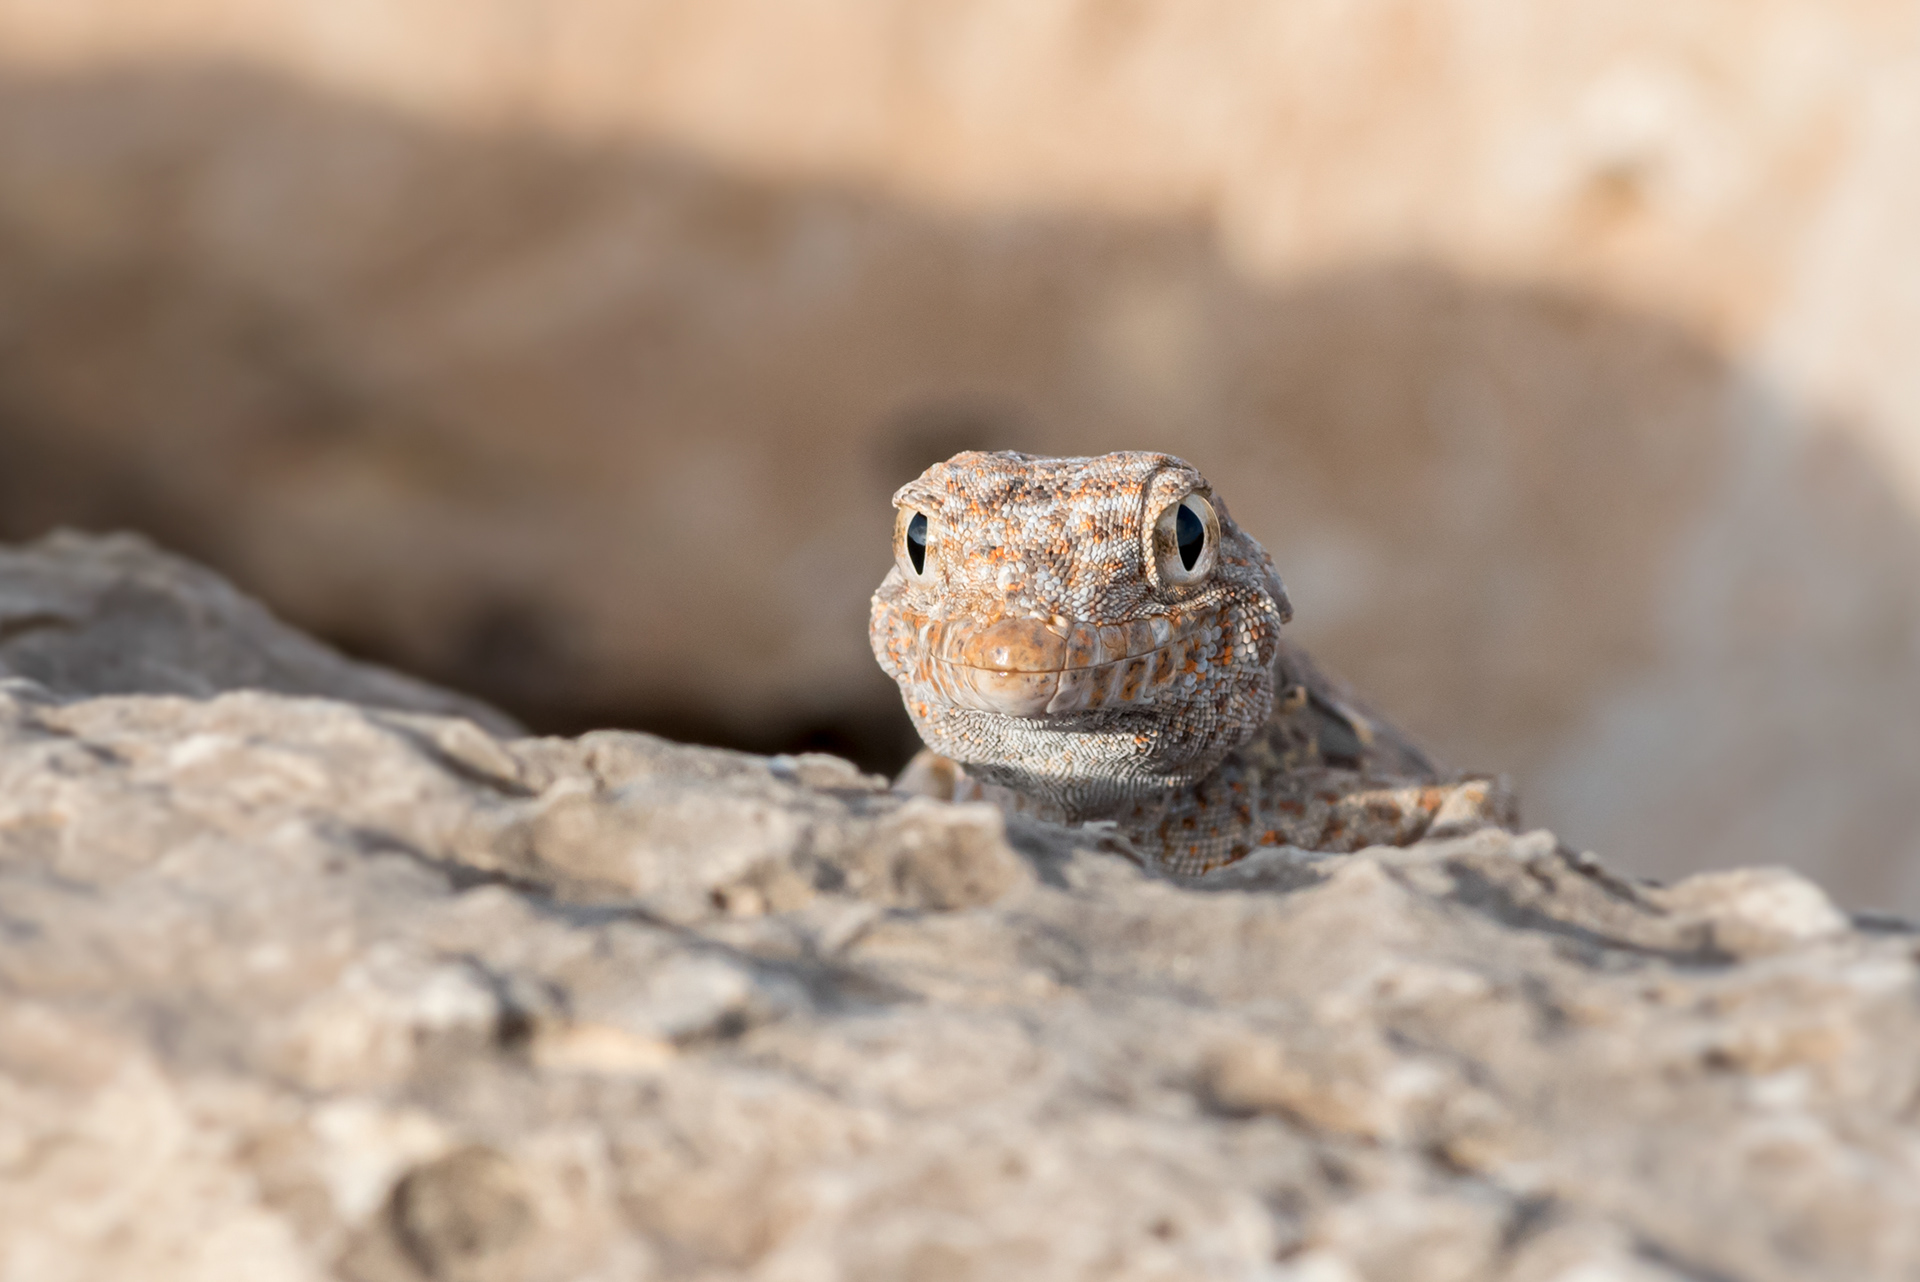 Rock semaphore gecko - Reptile of the Middle East